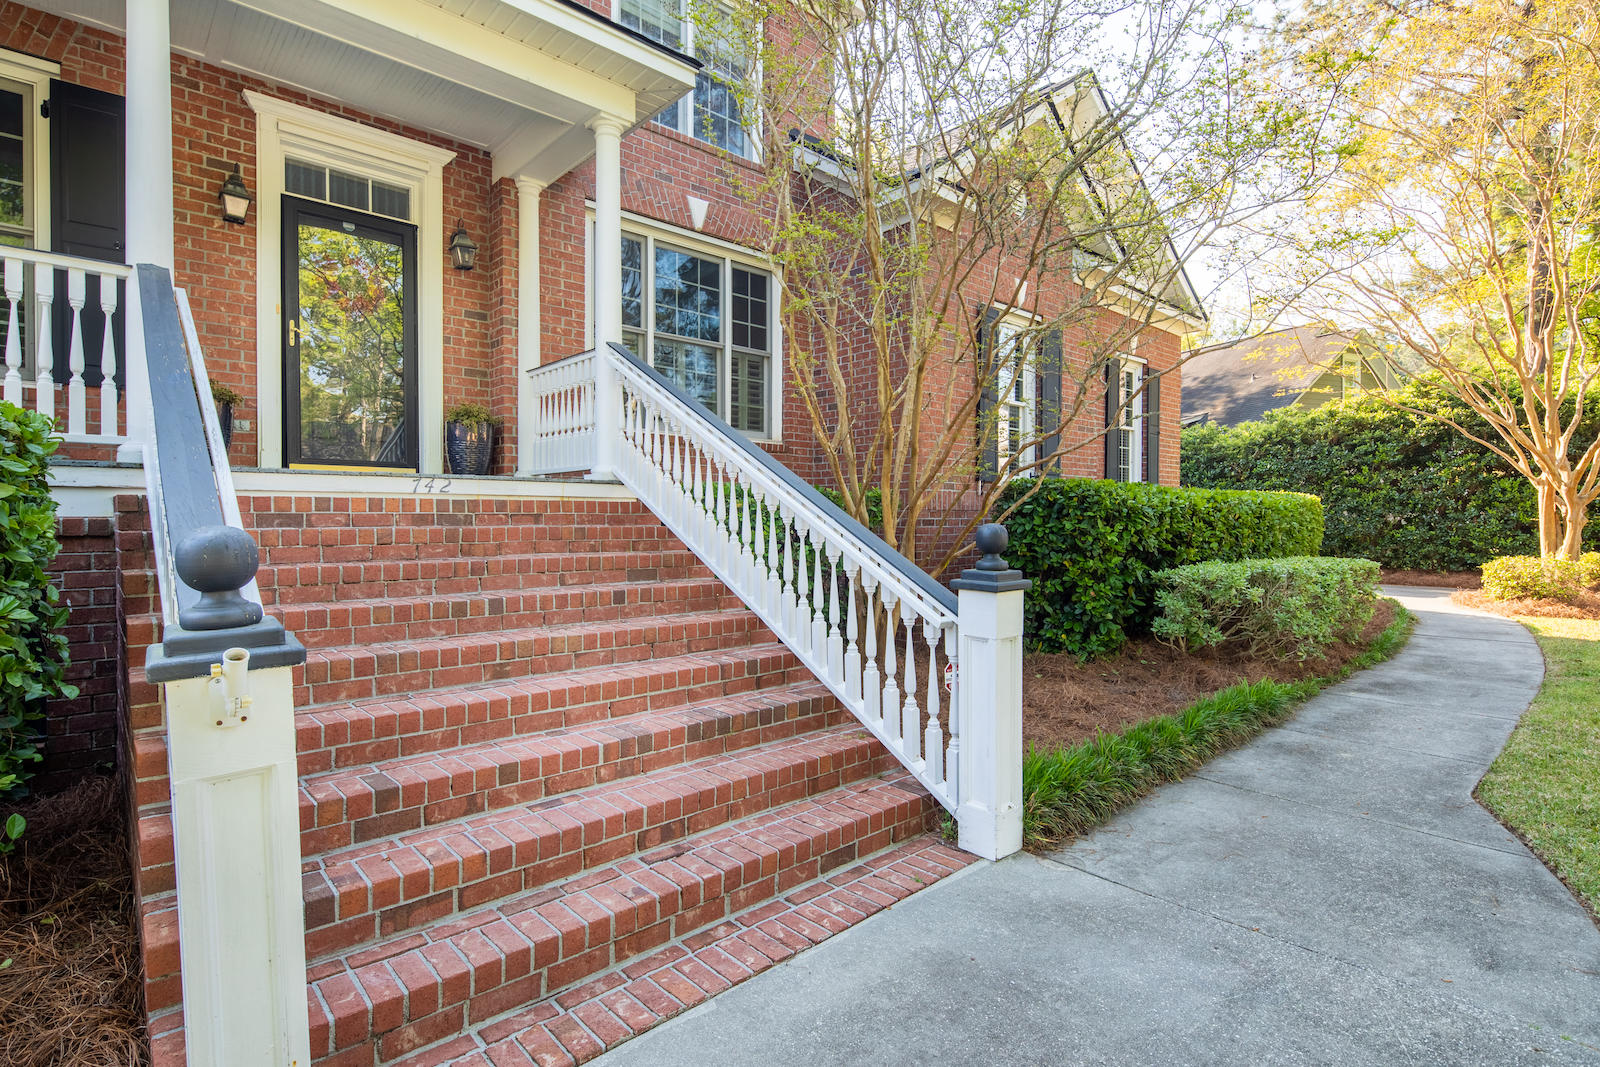 Stiles Point Plantation Homes For Sale - 742 Whispering Marsh, Charleston, SC - 0